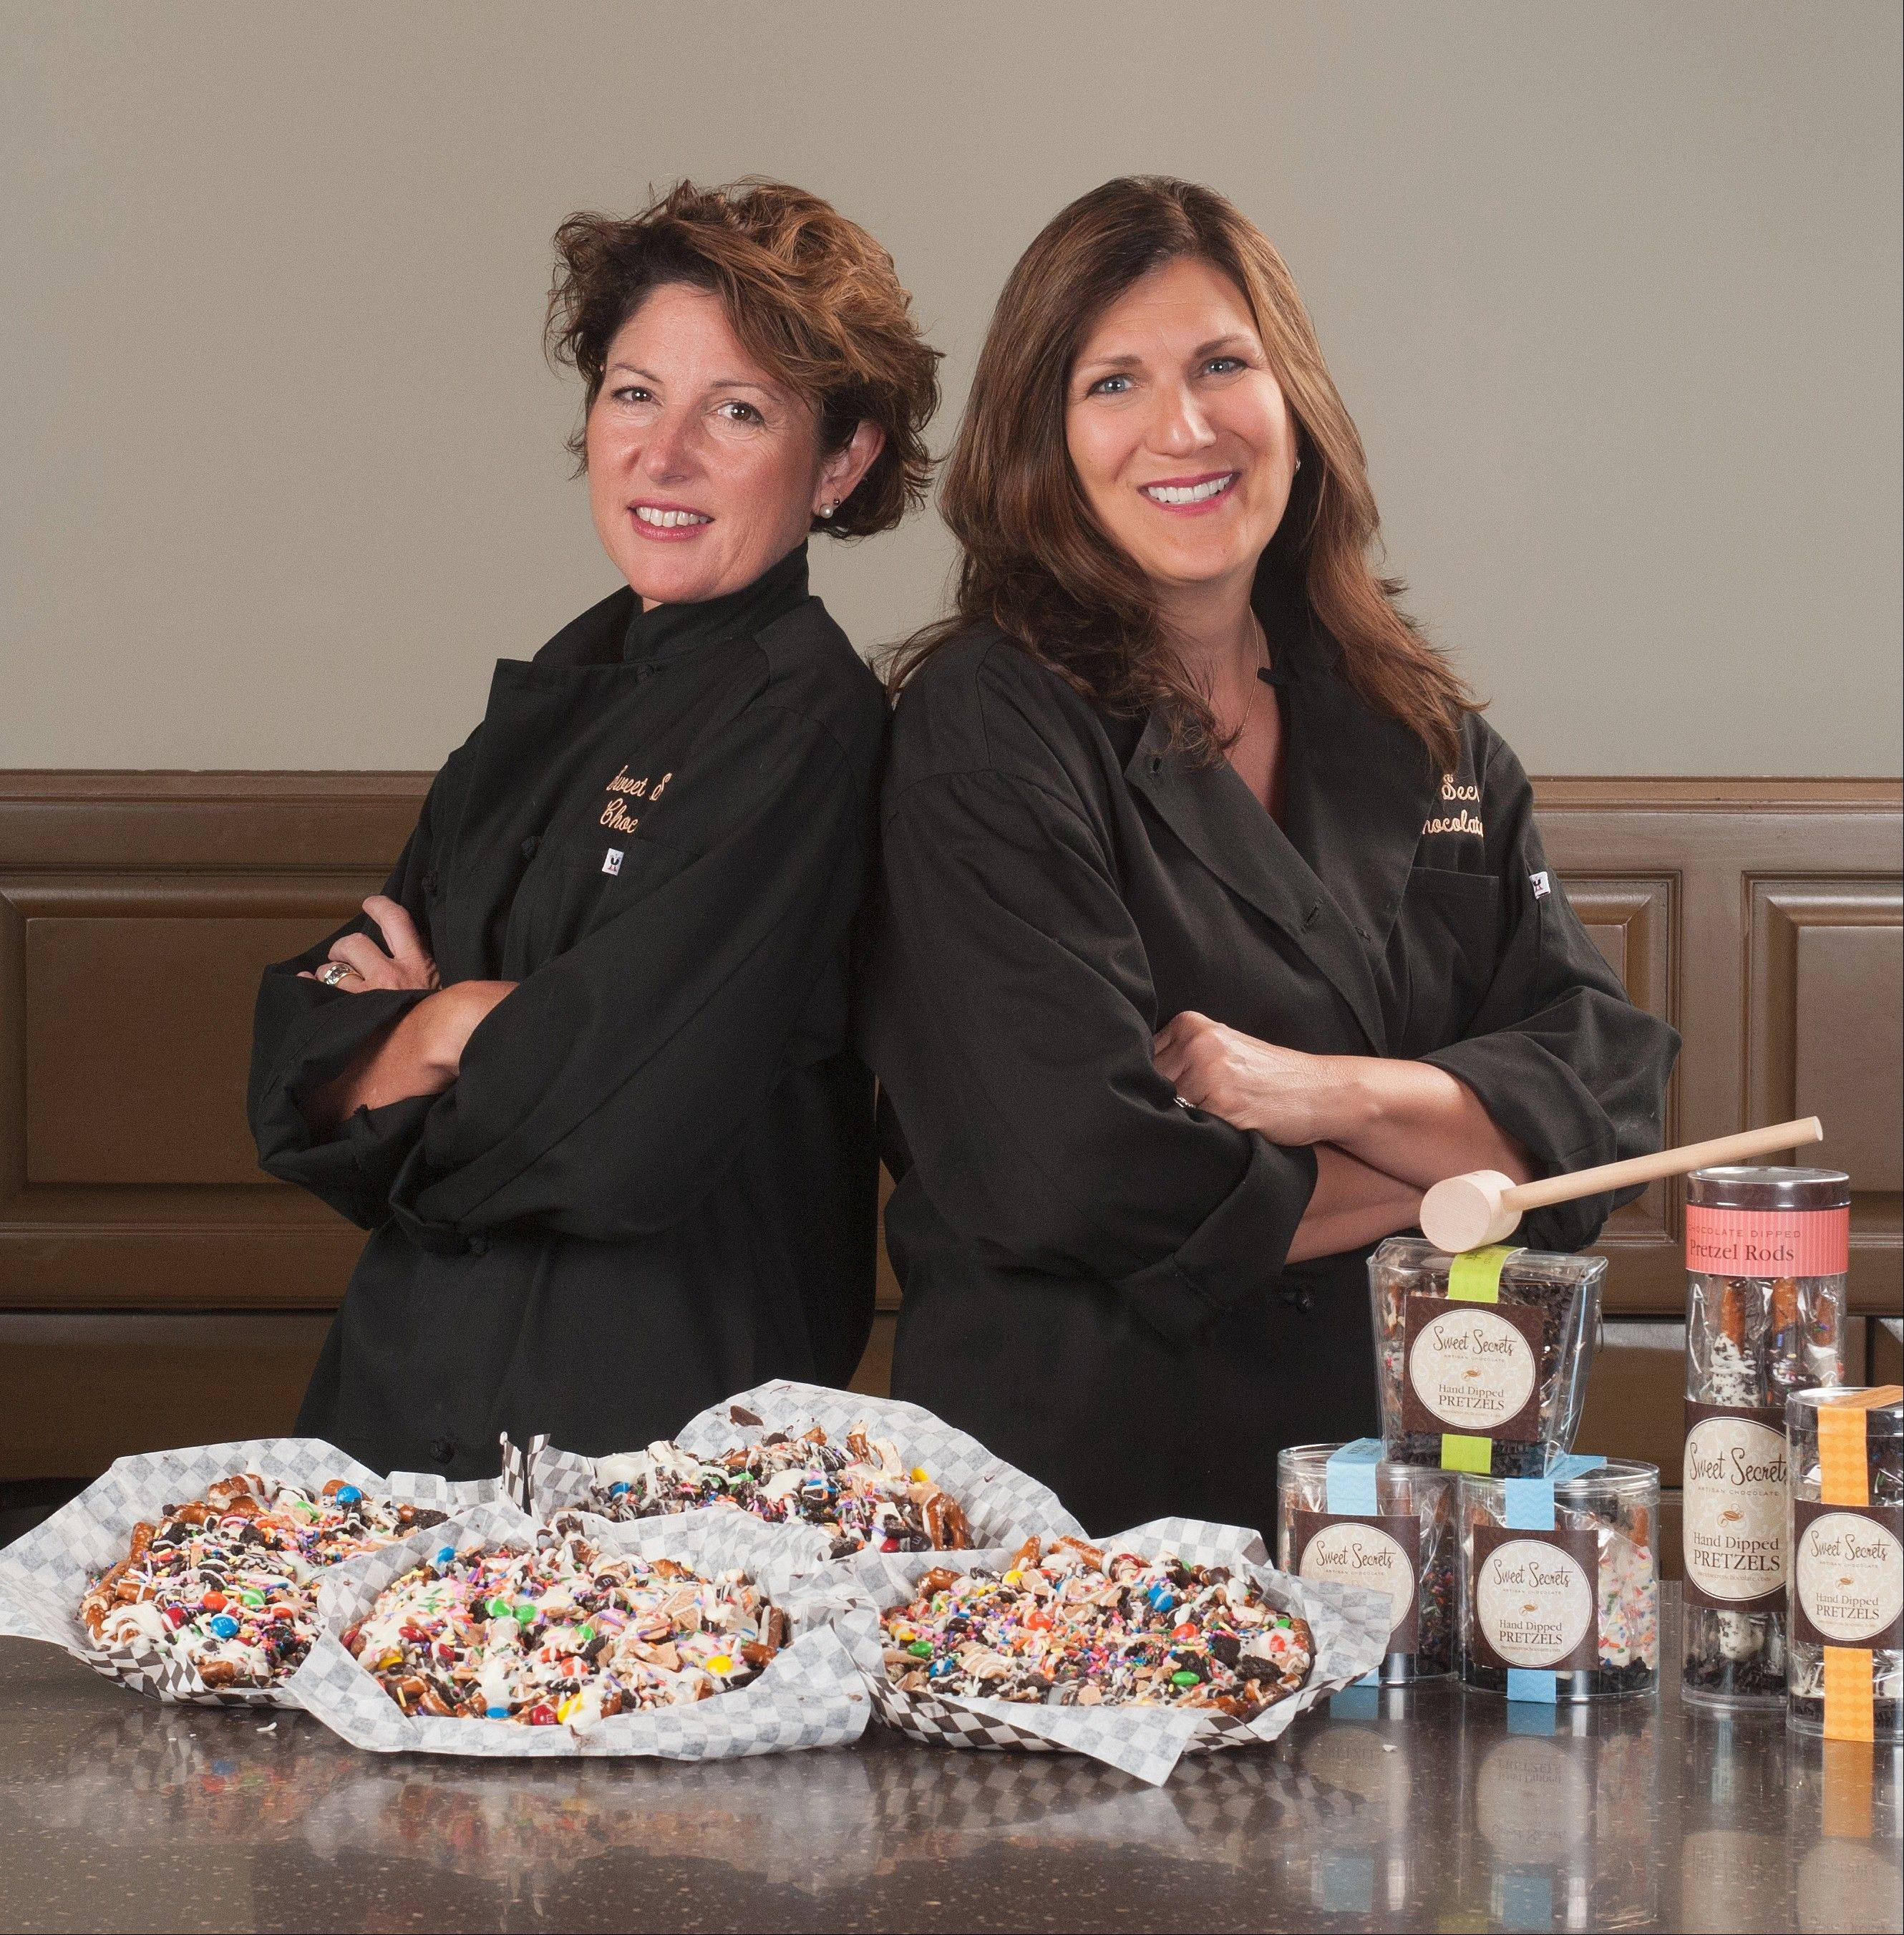 Chocolatiers Terri Kinney, left, and DeDe Barnicle, owners of Sweet Secrets Chocolates, were inspired by their children to create chocolate pretzel pizzas.